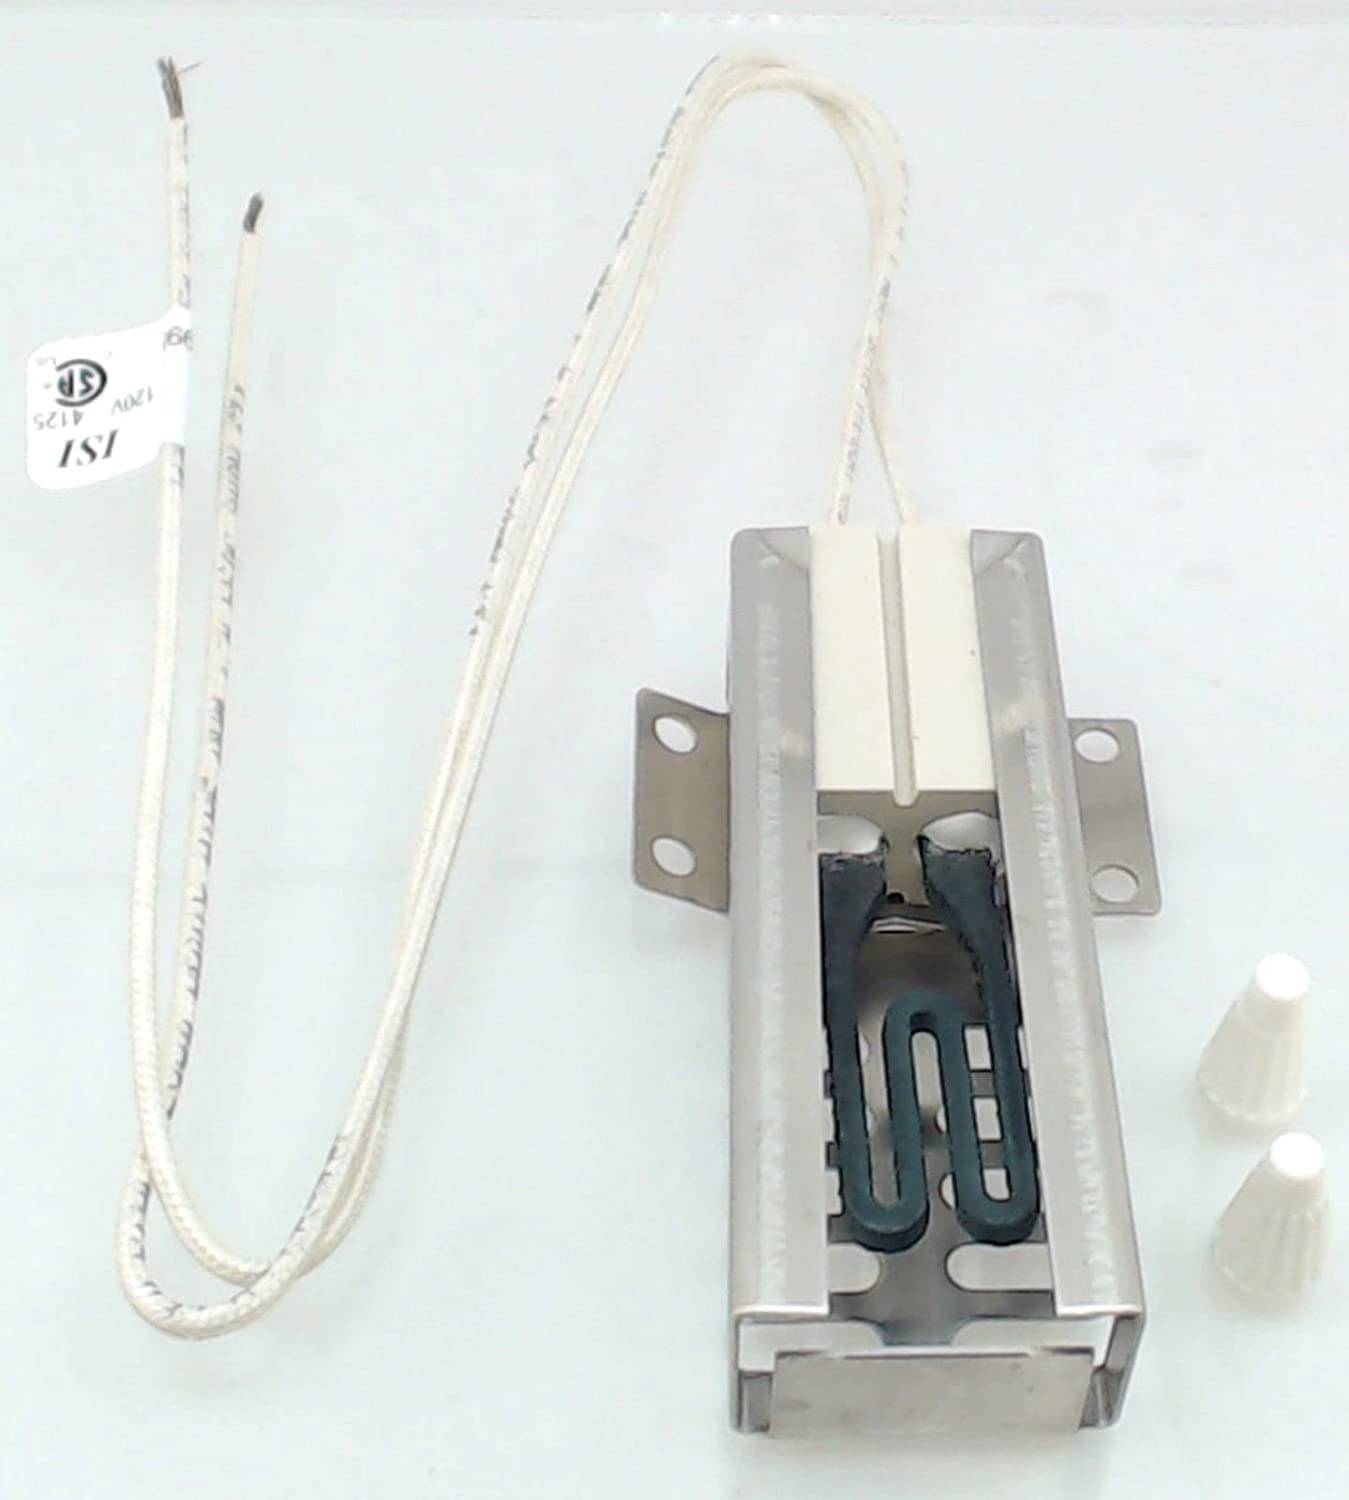 Gas Oven Ignitor for Whirlpool, Sears, AP3129373, PS404326, 98005652